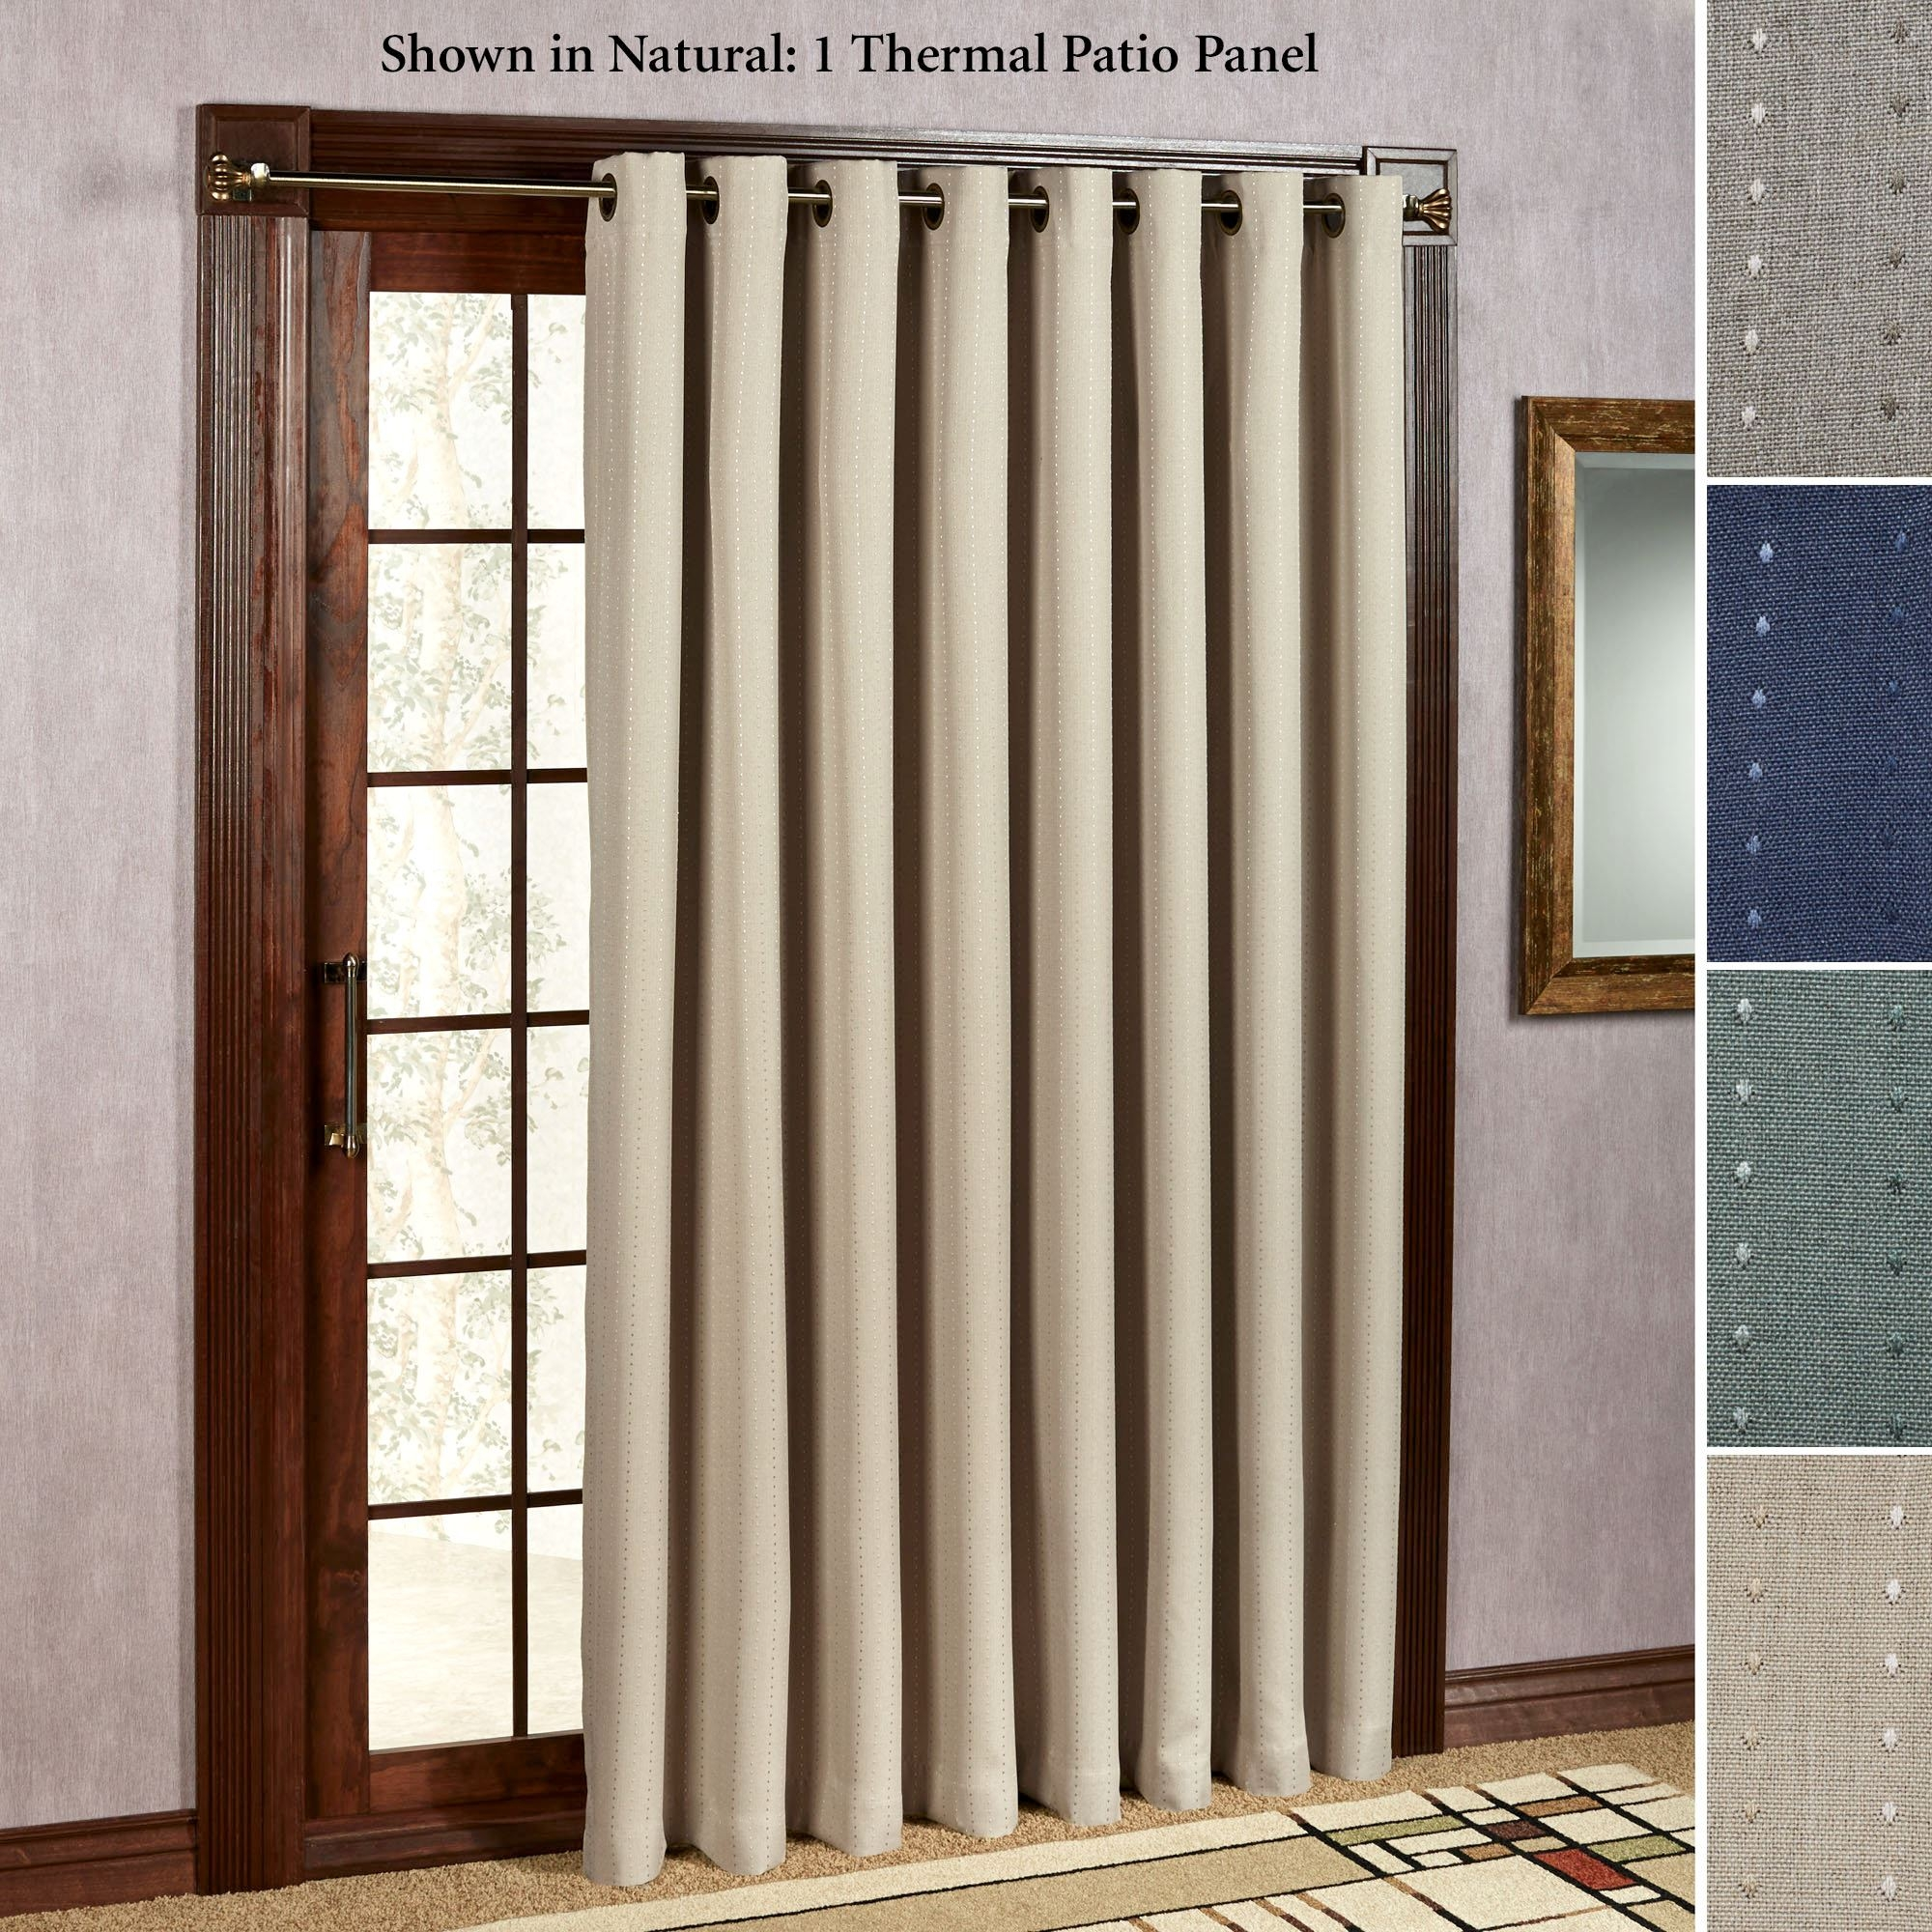 Thermal Blackout Curtains For Sliding Glass Doors2000 X 2000